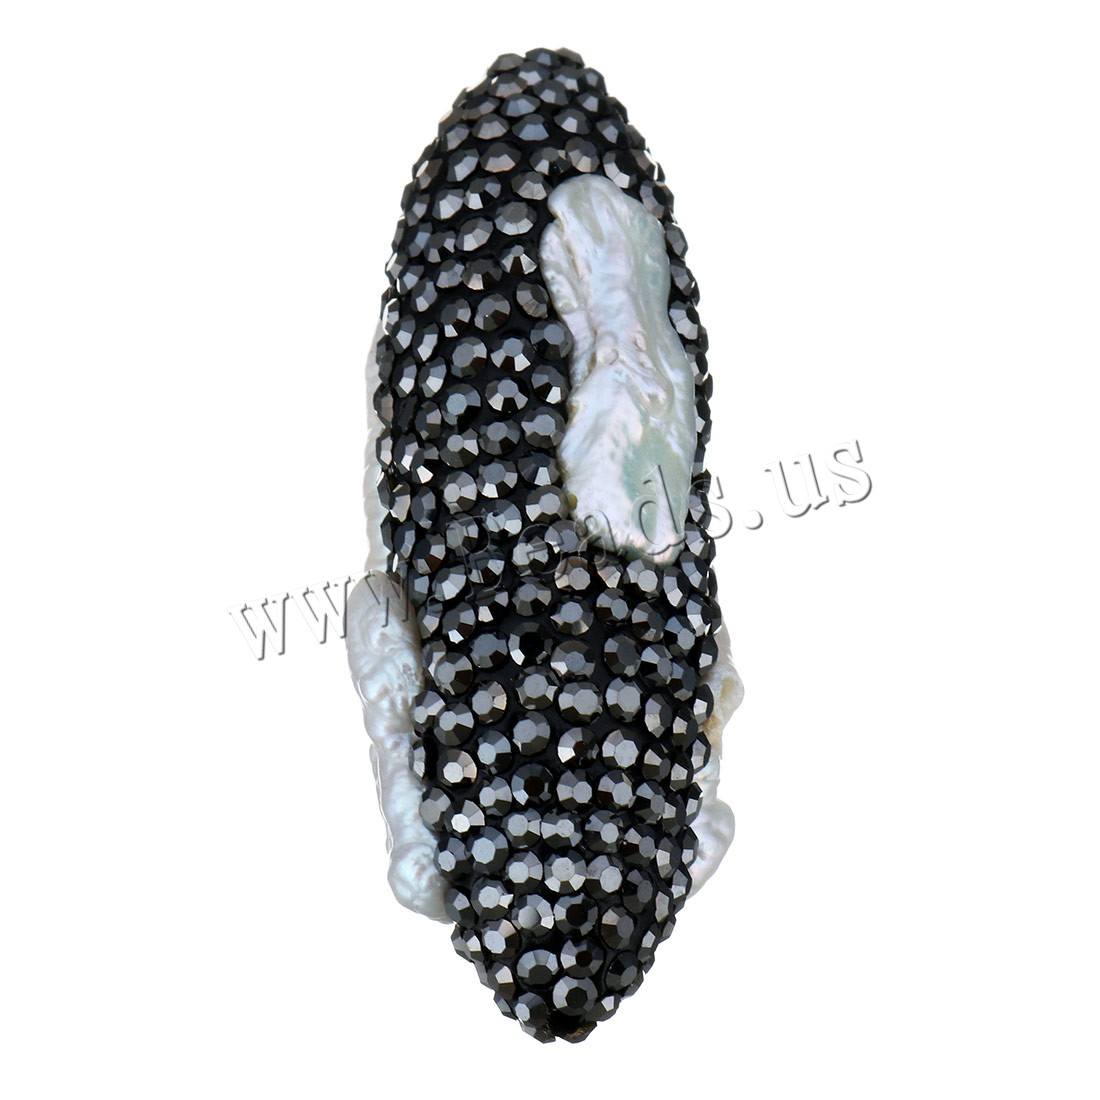 Buy Rhinestone Clay Pave Beads Freshwater Pearl rhinestone 15x43x17mm Hole:Approx 1.5mm Sold Lot